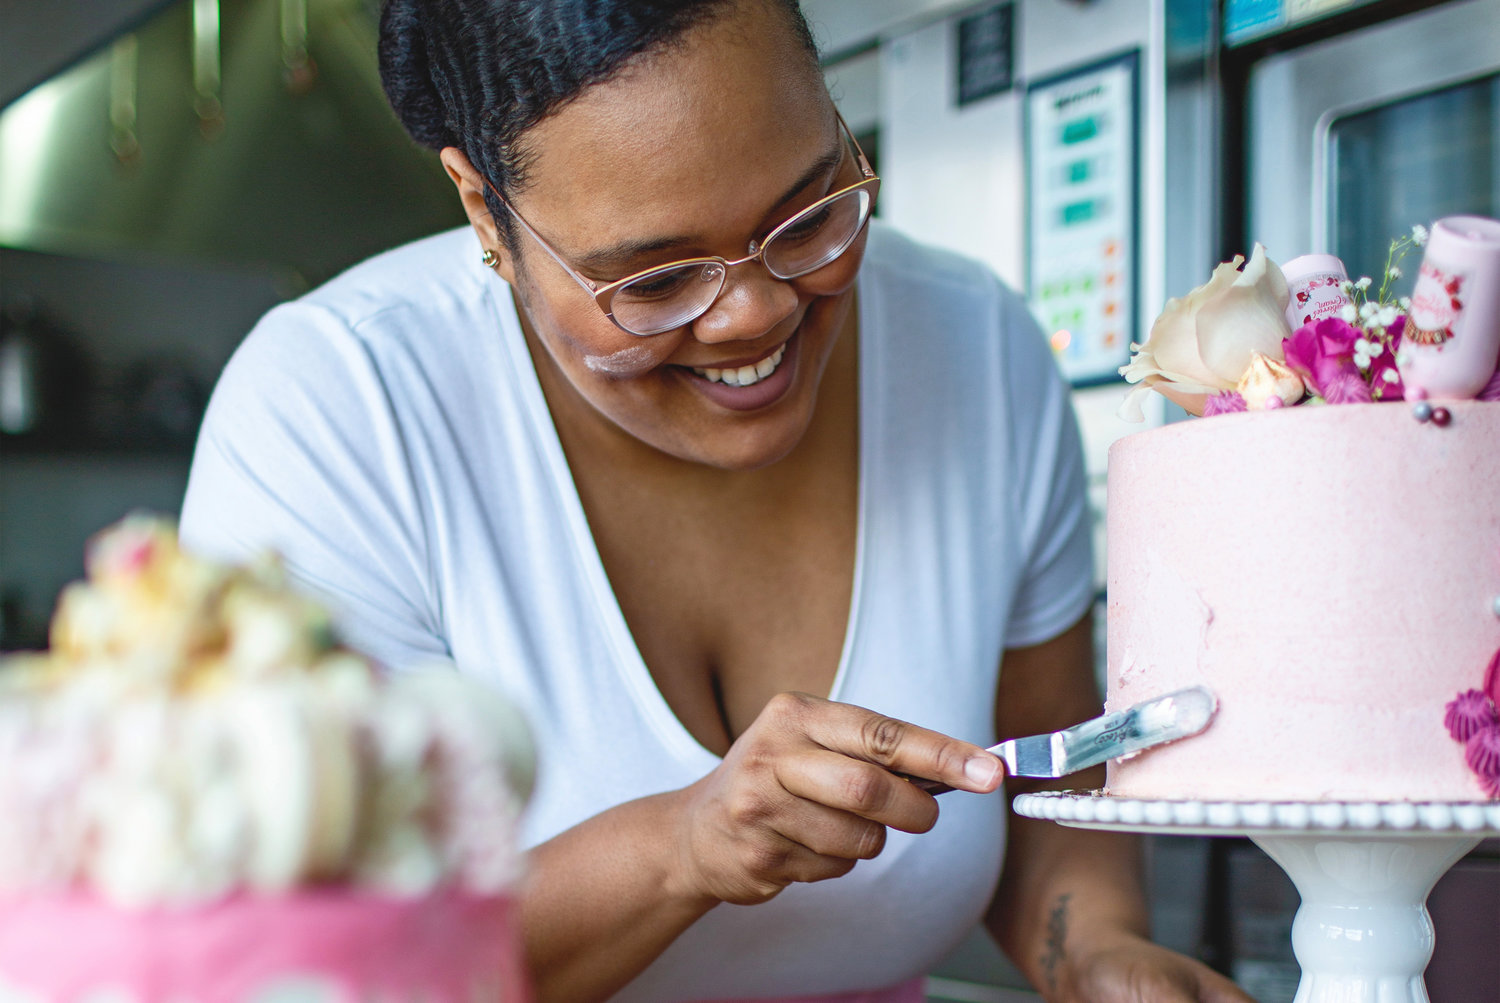 Schantel Maxine Neal carries on her grandmother's legacy, baking and frosting fresh cakes out of Hope & Main